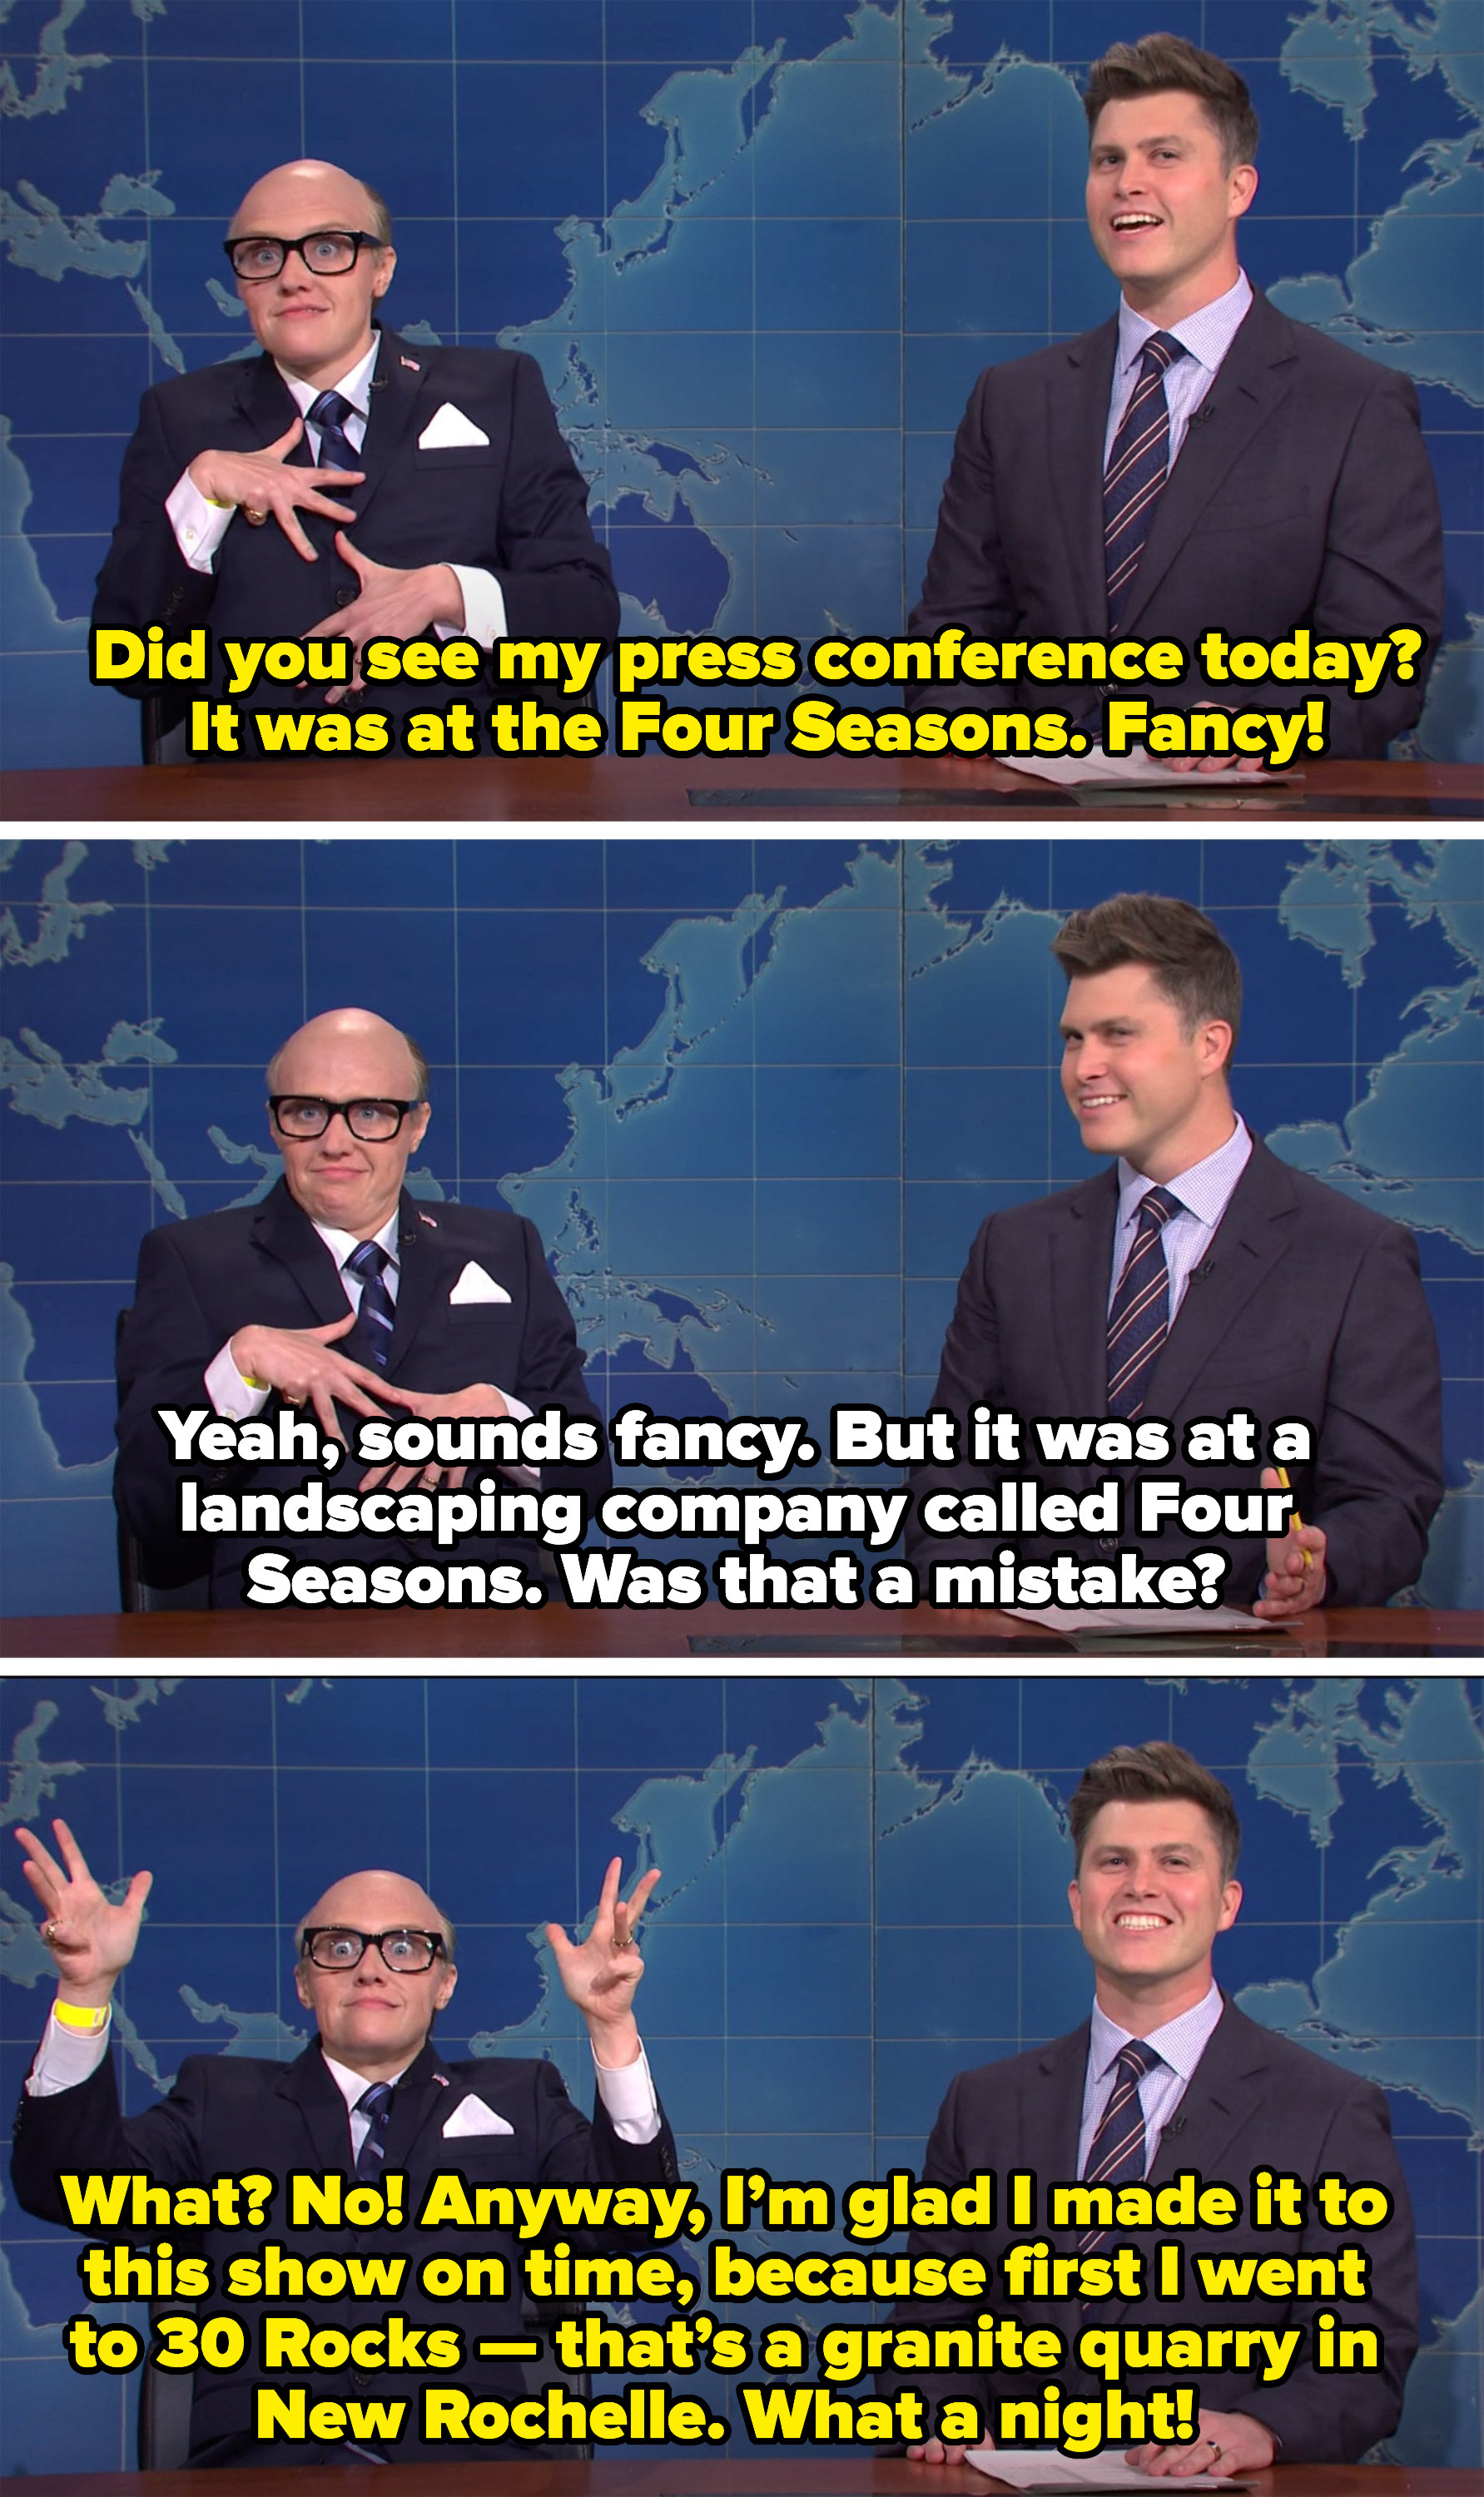 """Giuliani saying his press conference was fancy, not a mistake, and that he accidentally went to a granite quarry called """"30 Rocks"""" instead of the 30 Rock studio"""